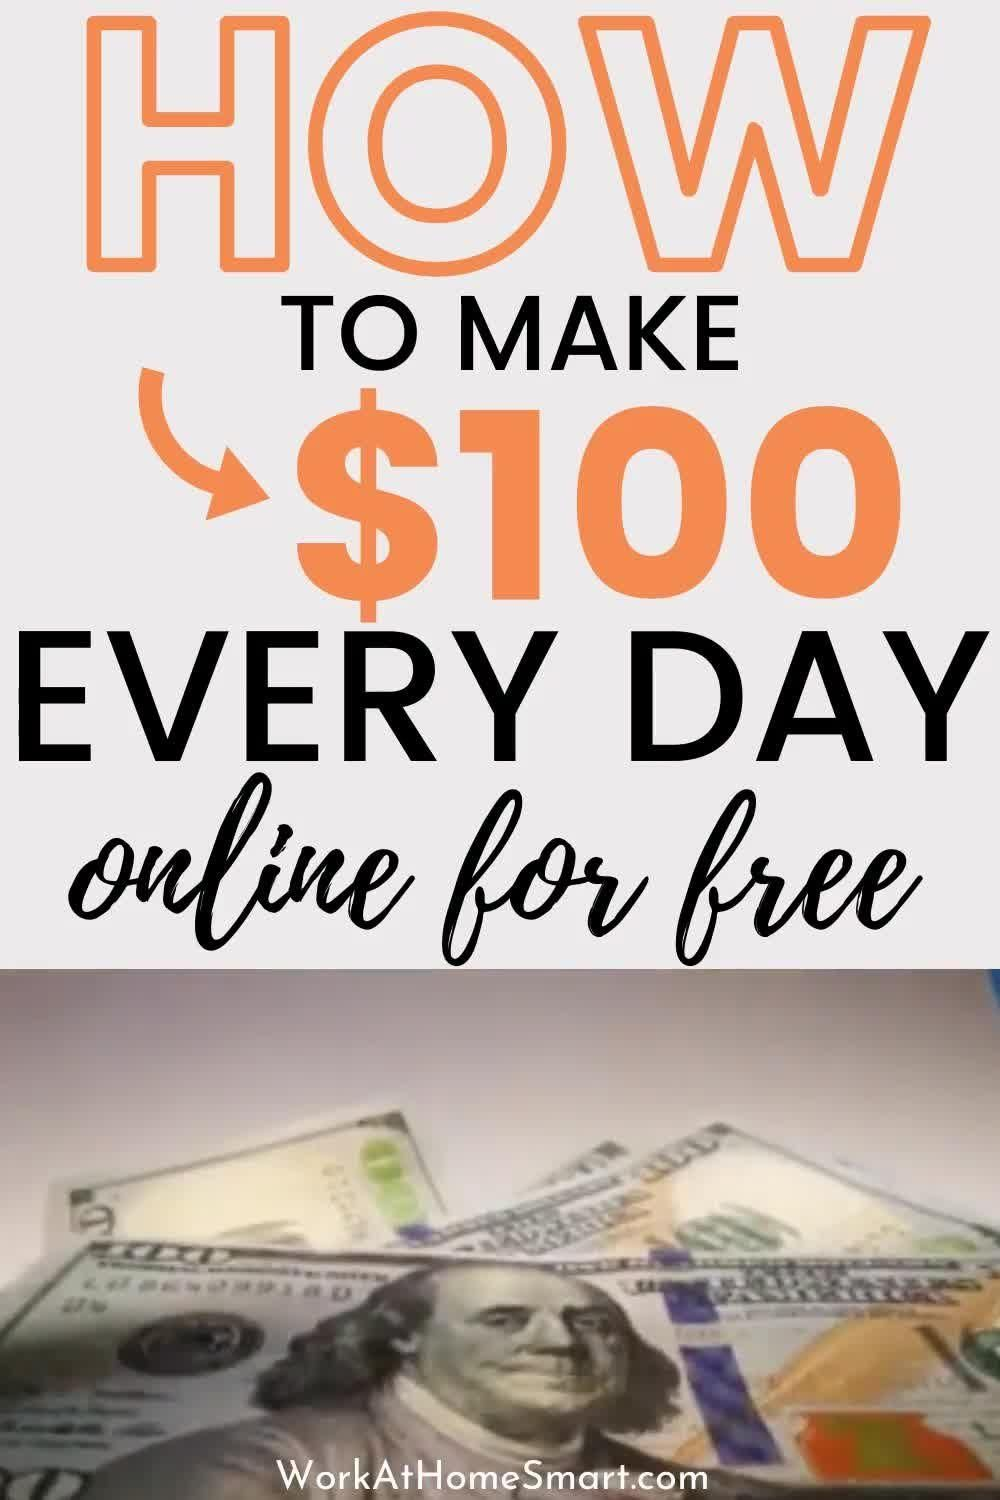 The internet has opened up so many opportunities to make money from home. Here are 15 websites and apps that will make you $100 per day online.